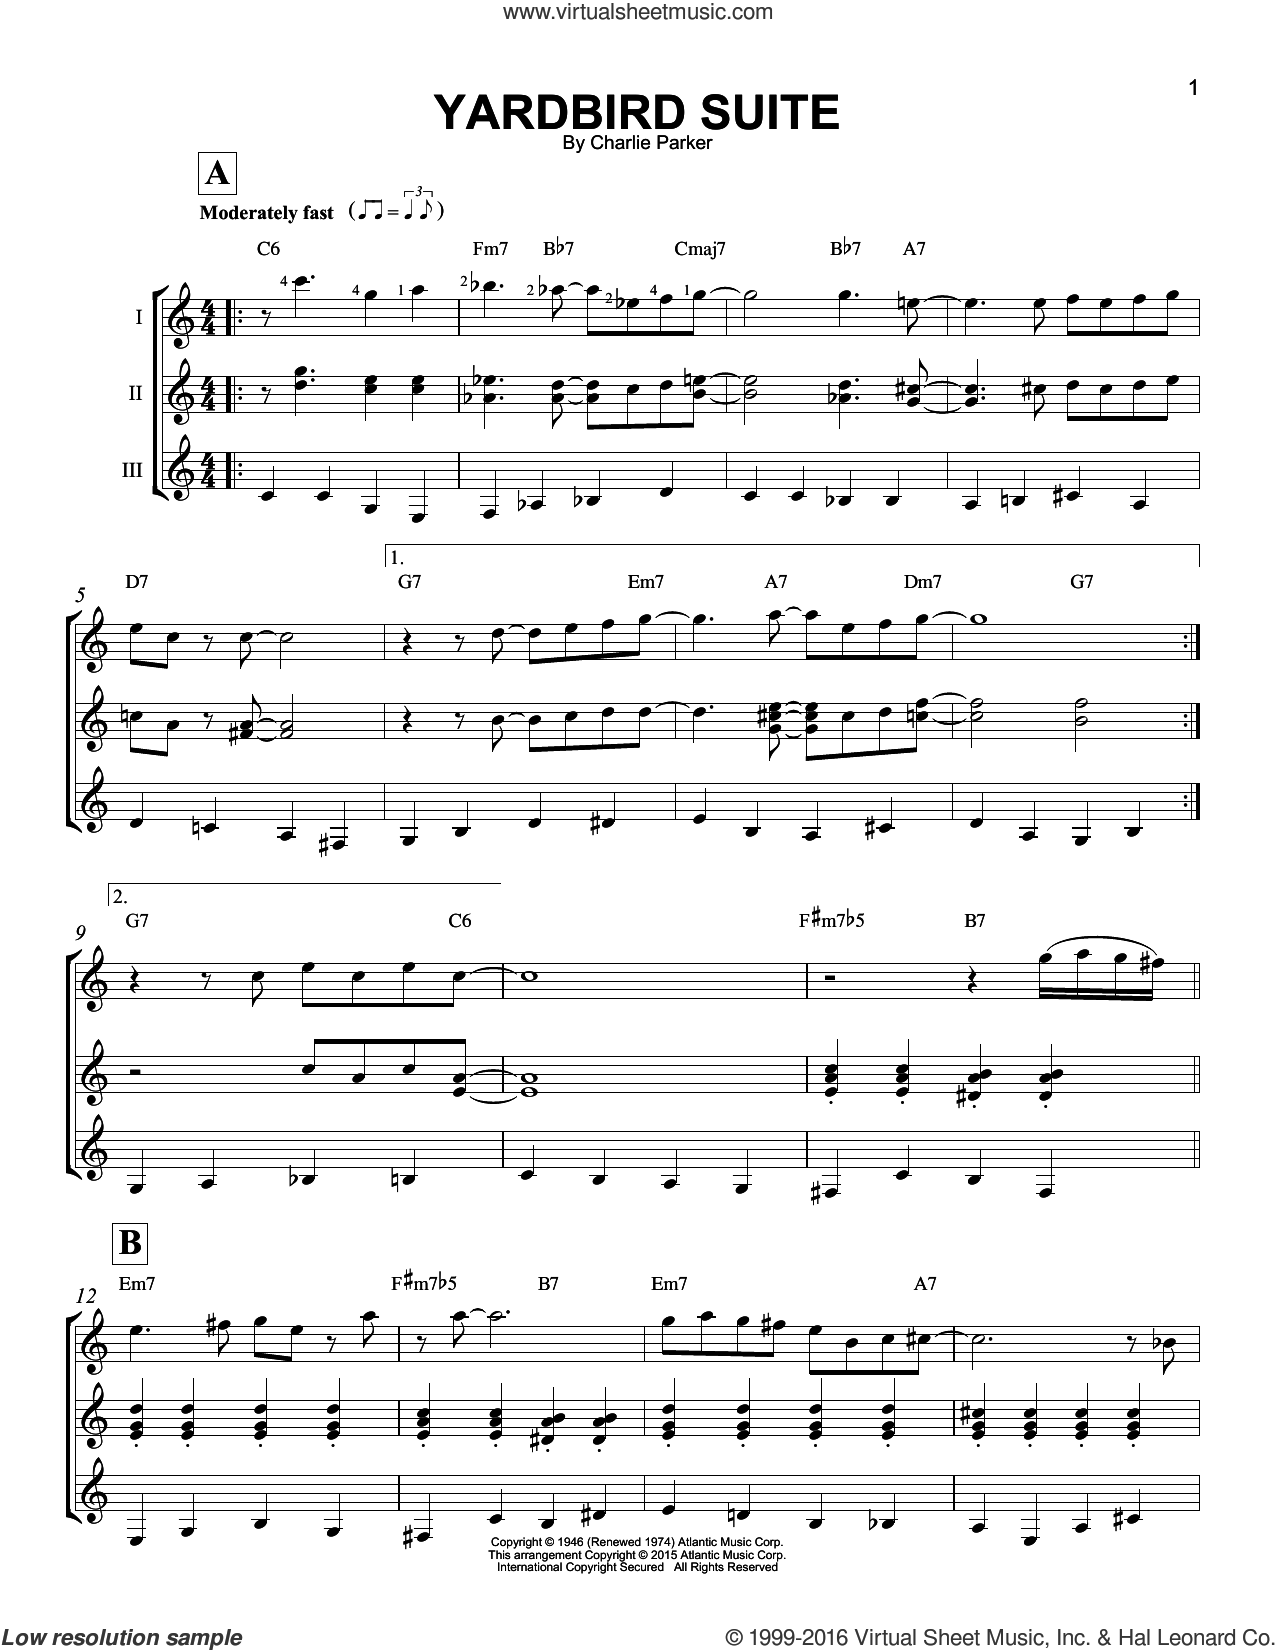 Yardbird Suite sheet music for guitar ensemble by Charlie Parker. Score Image Preview.